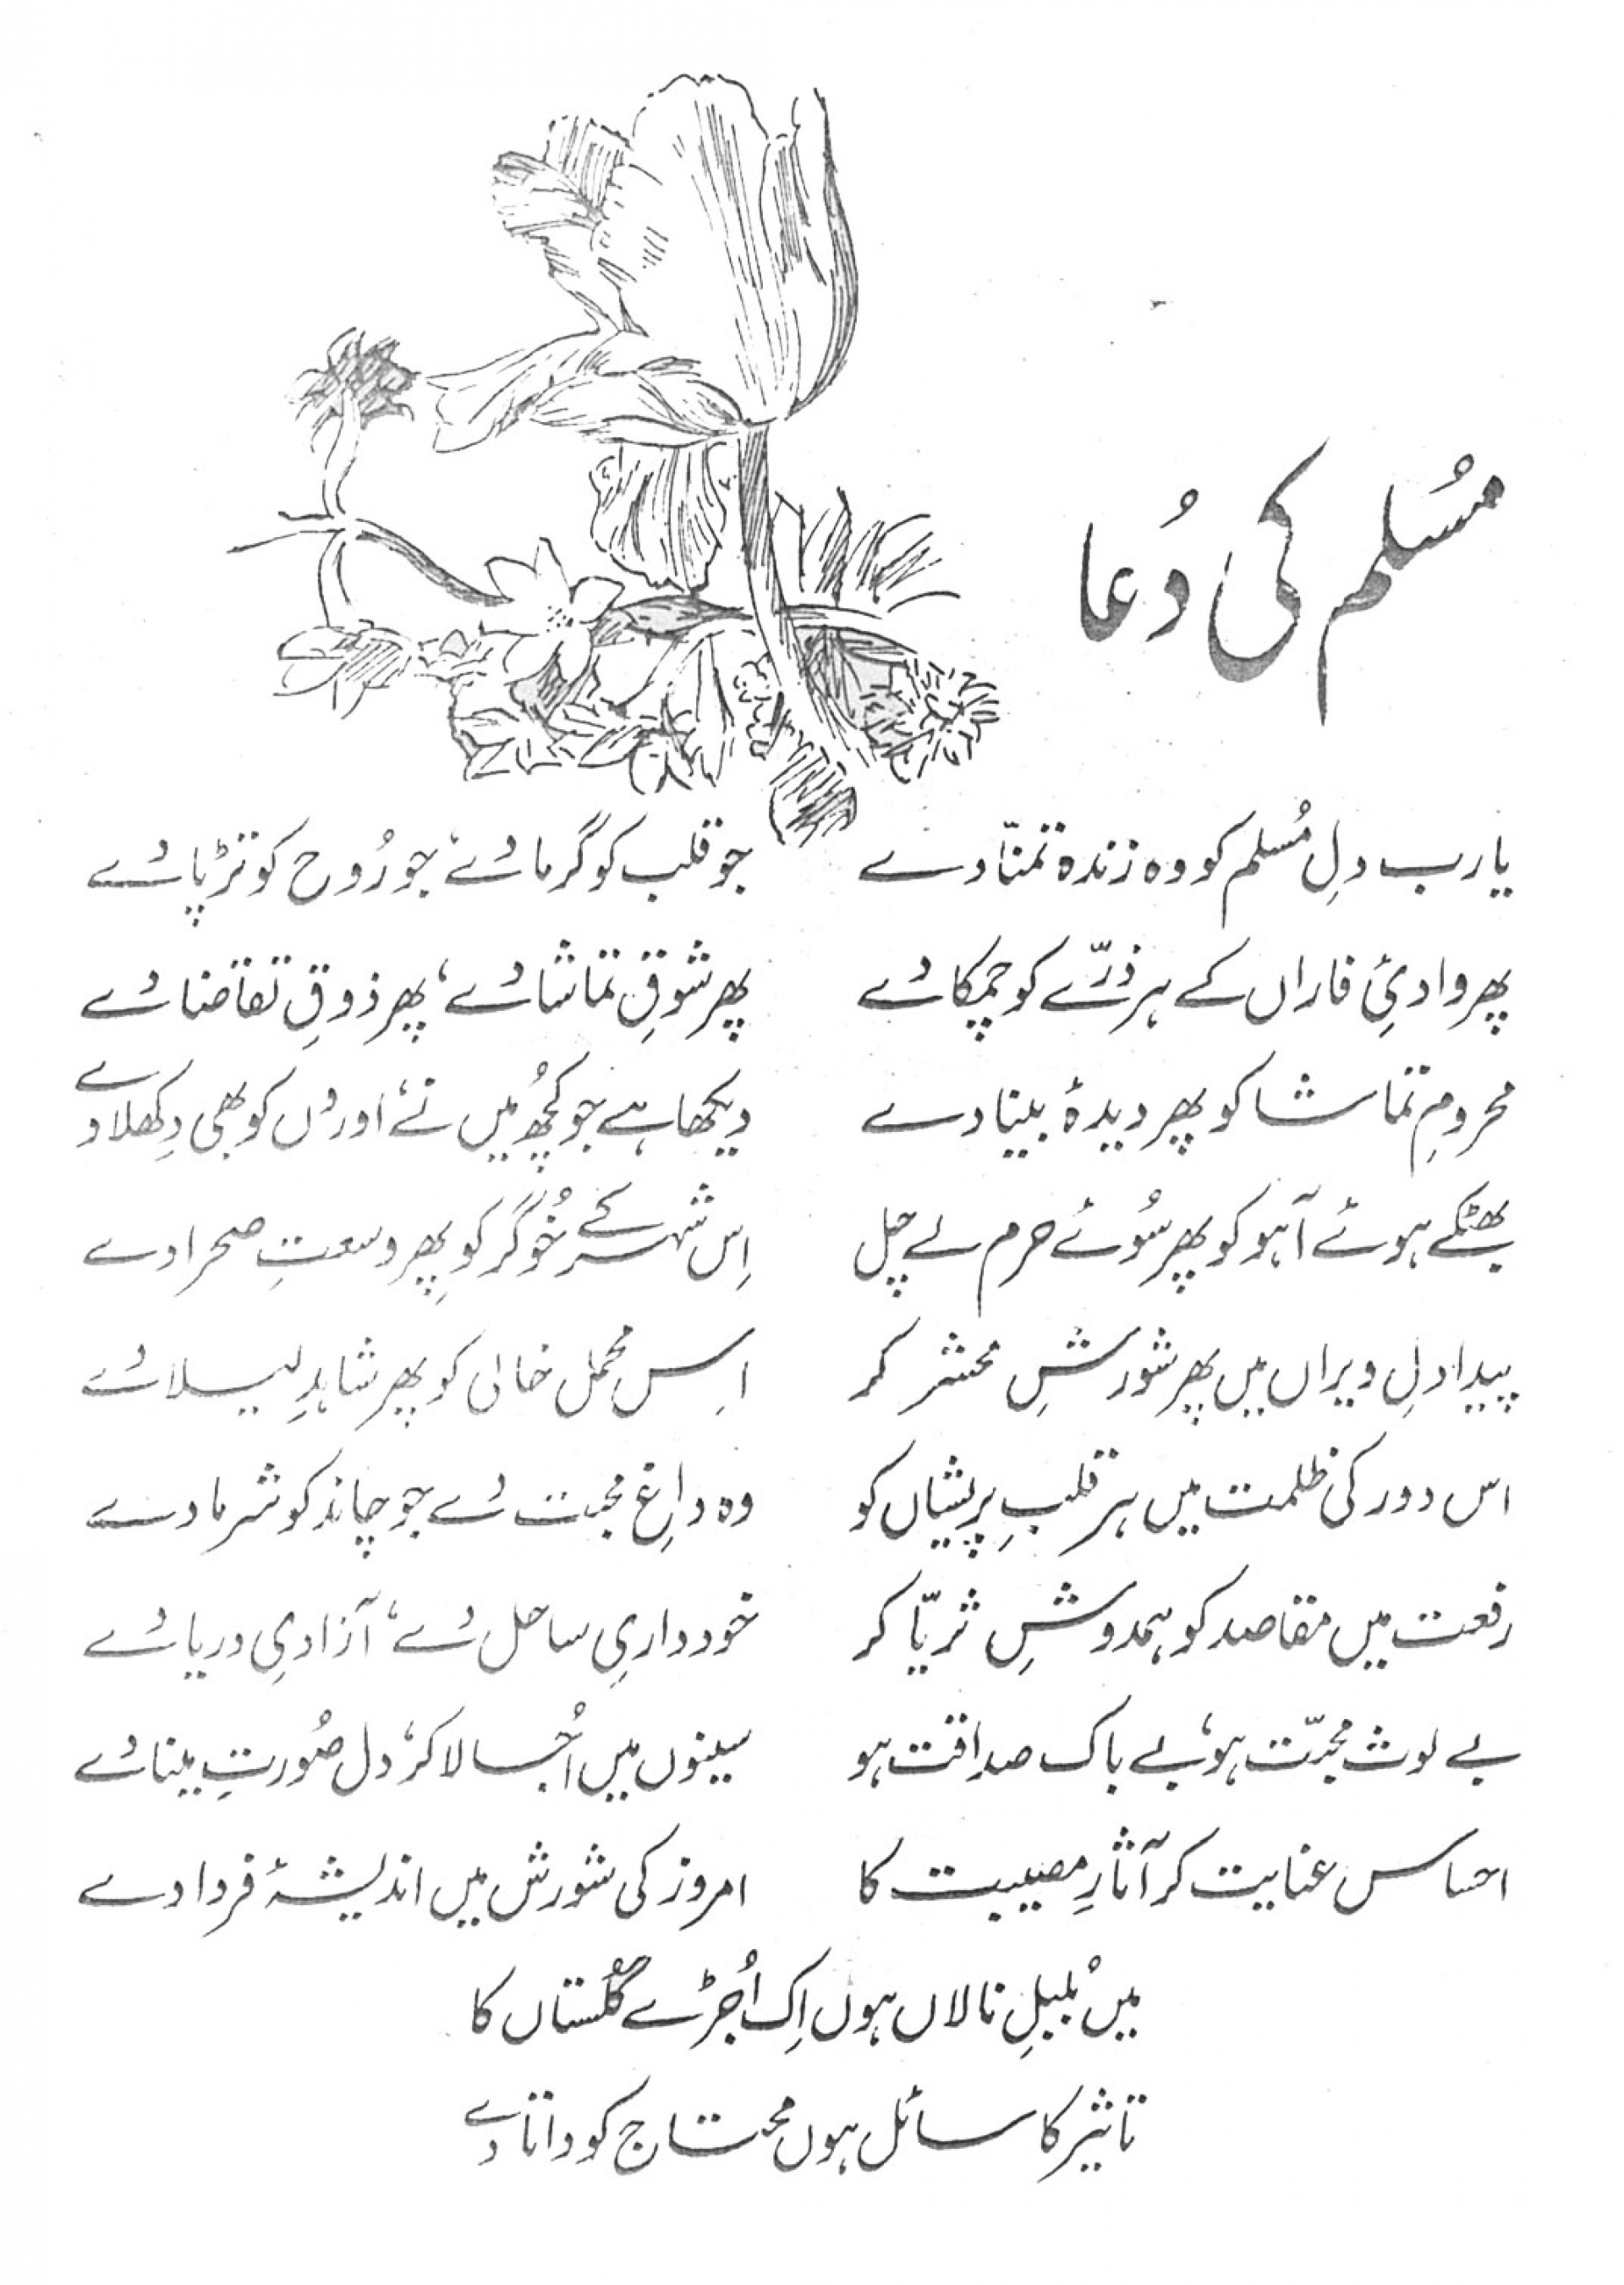 013 Urdu Essay Allama Iqbal Duva1 Dreaded On In For Class 10 With Poetry Ka Shaheen Headings And 1920